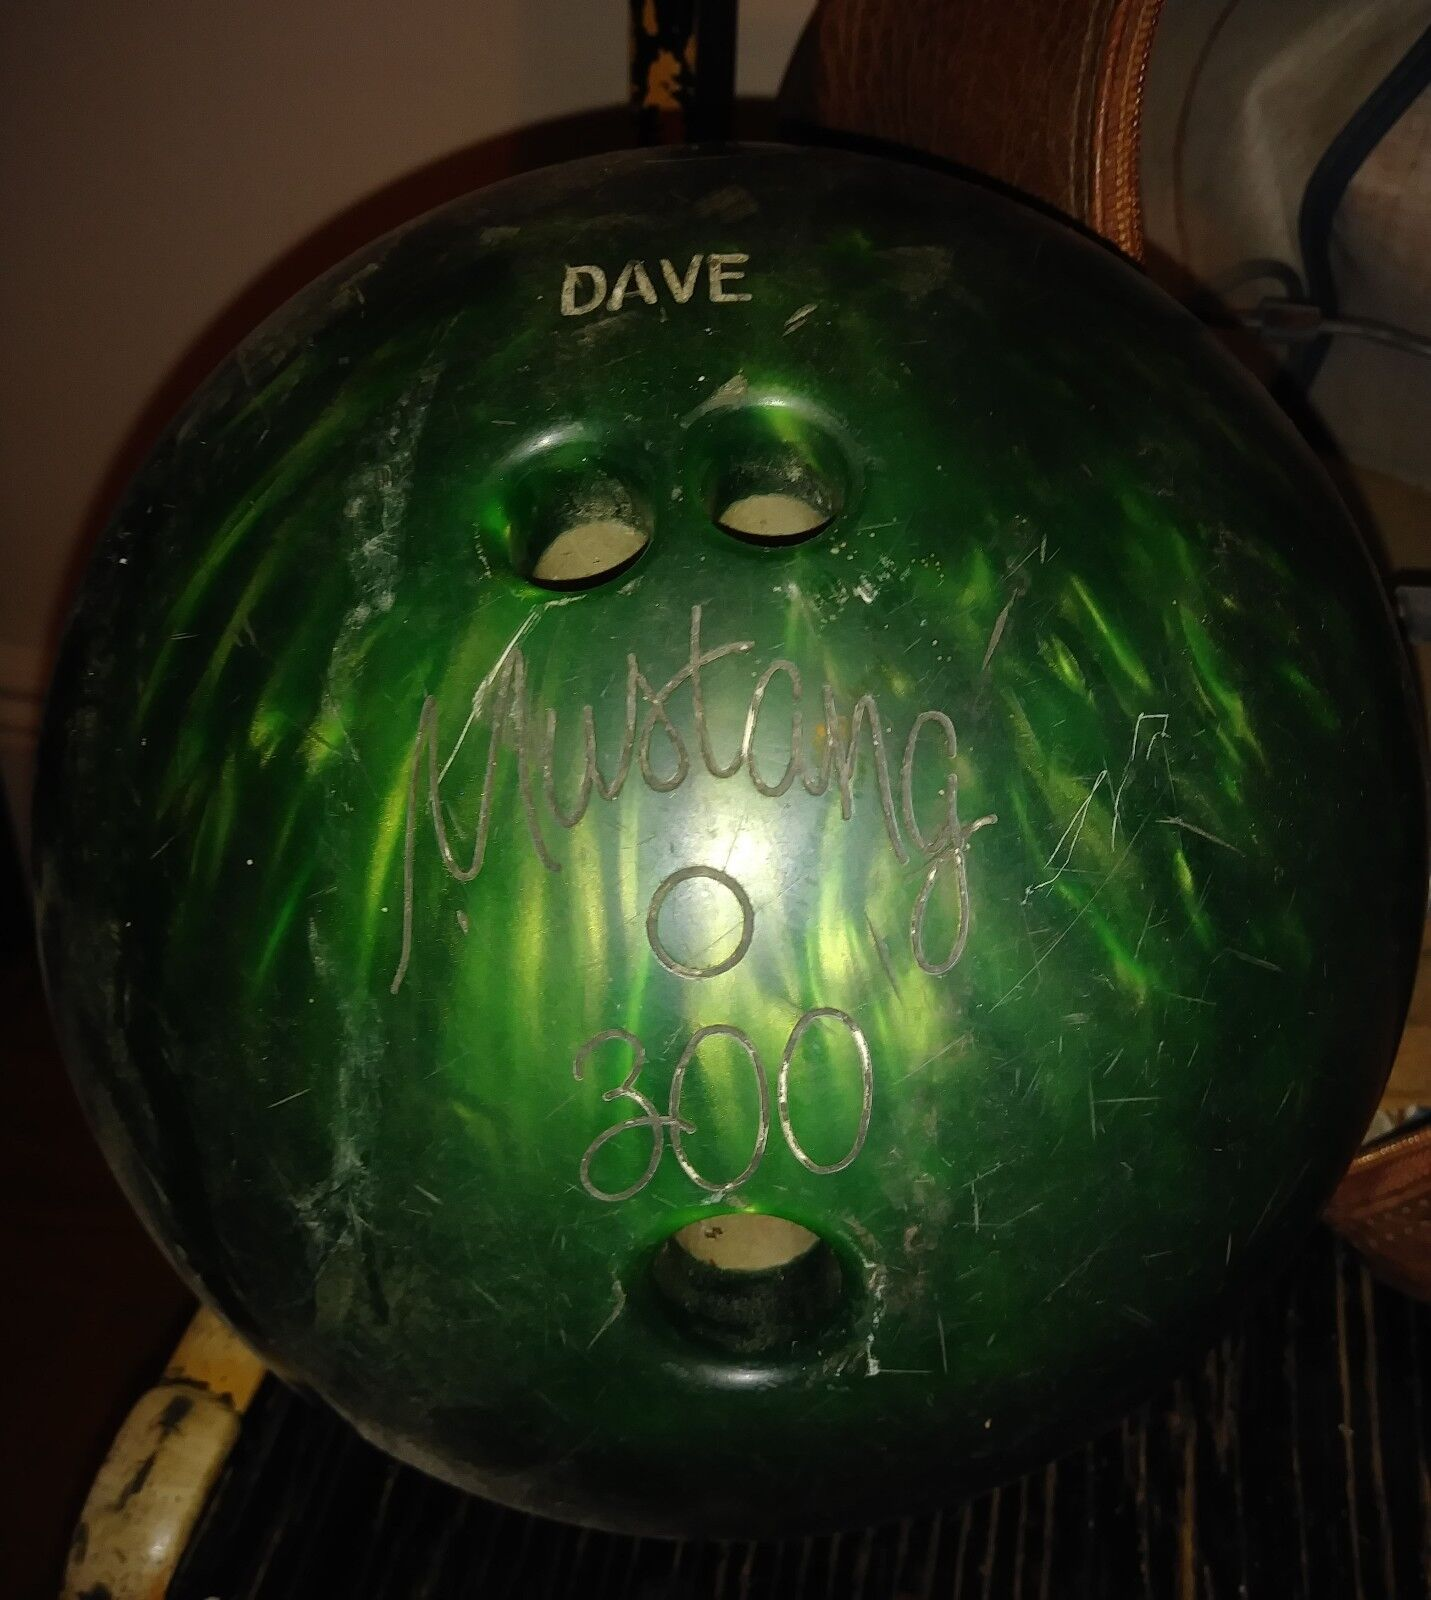 Signature Version Bowling Ball /[m] Dave Mustang 300 With Original Luggage